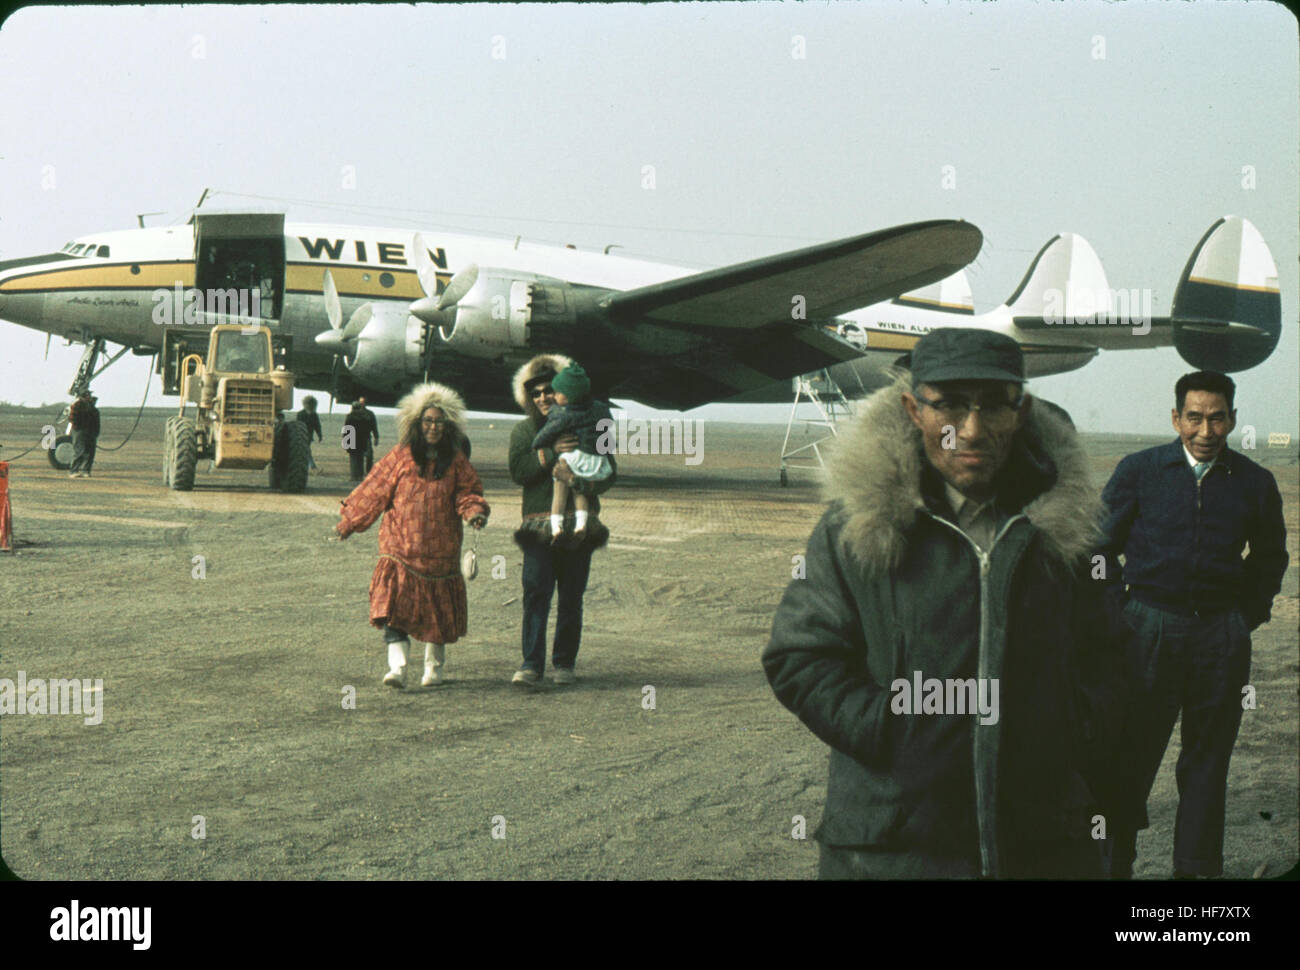 Eskimo people at airport; Point Barrow, Alaska.  No roads connect Point Barrow with the rest of the state. Planes - Stock Image